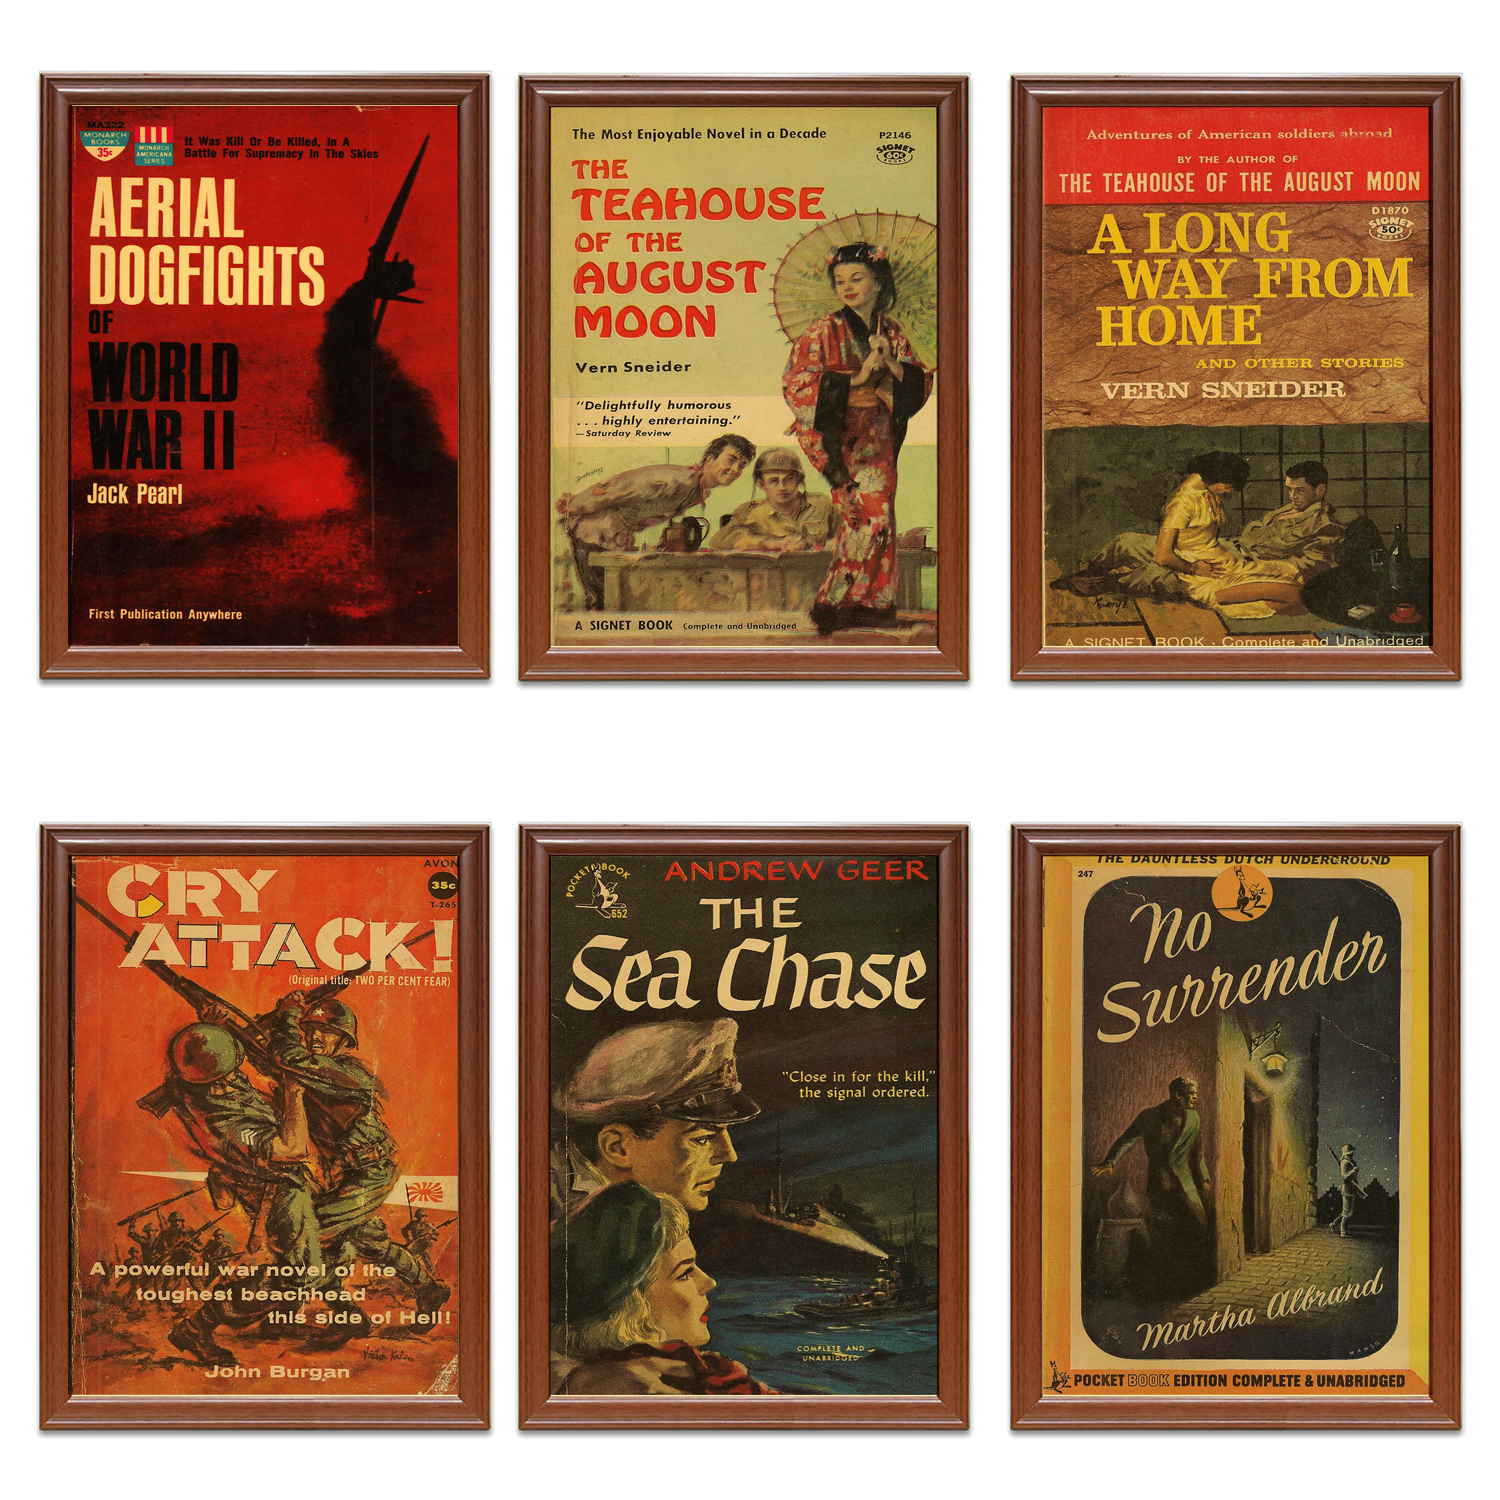 Vintage WW1 WW2 Story Book Covers Poster No Surrenders Kraft Posters Classic Canvas Paintings Wall Stickers Home Decor Gift image